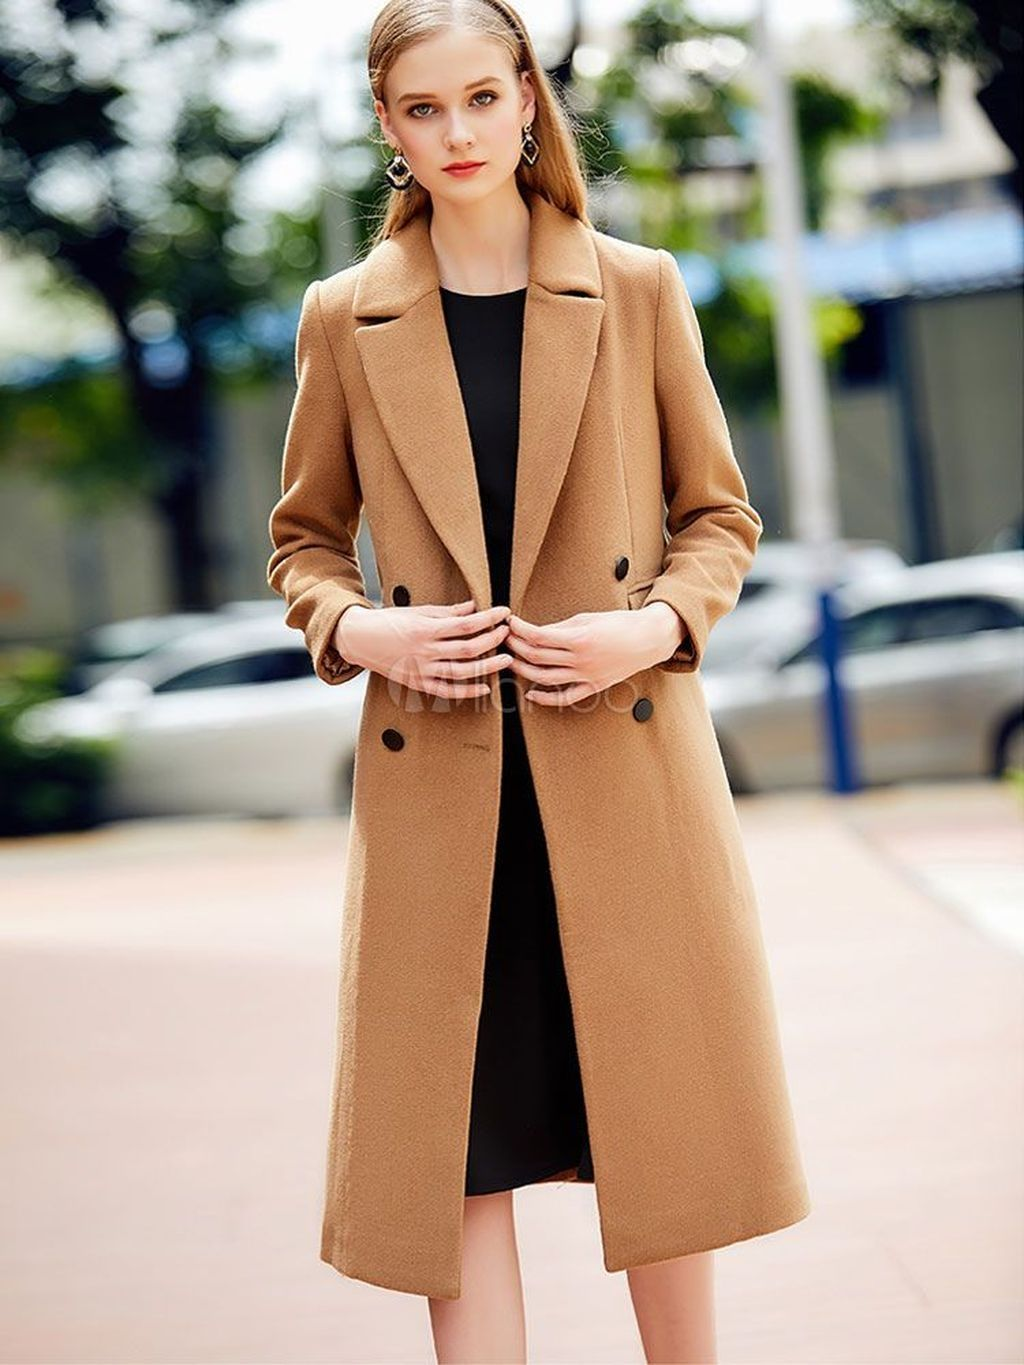 50 Adorable Women Winter Coats Ideas You Can Try Wintermantel Damen Schwarzer Mantel Damen Mantel Frauen